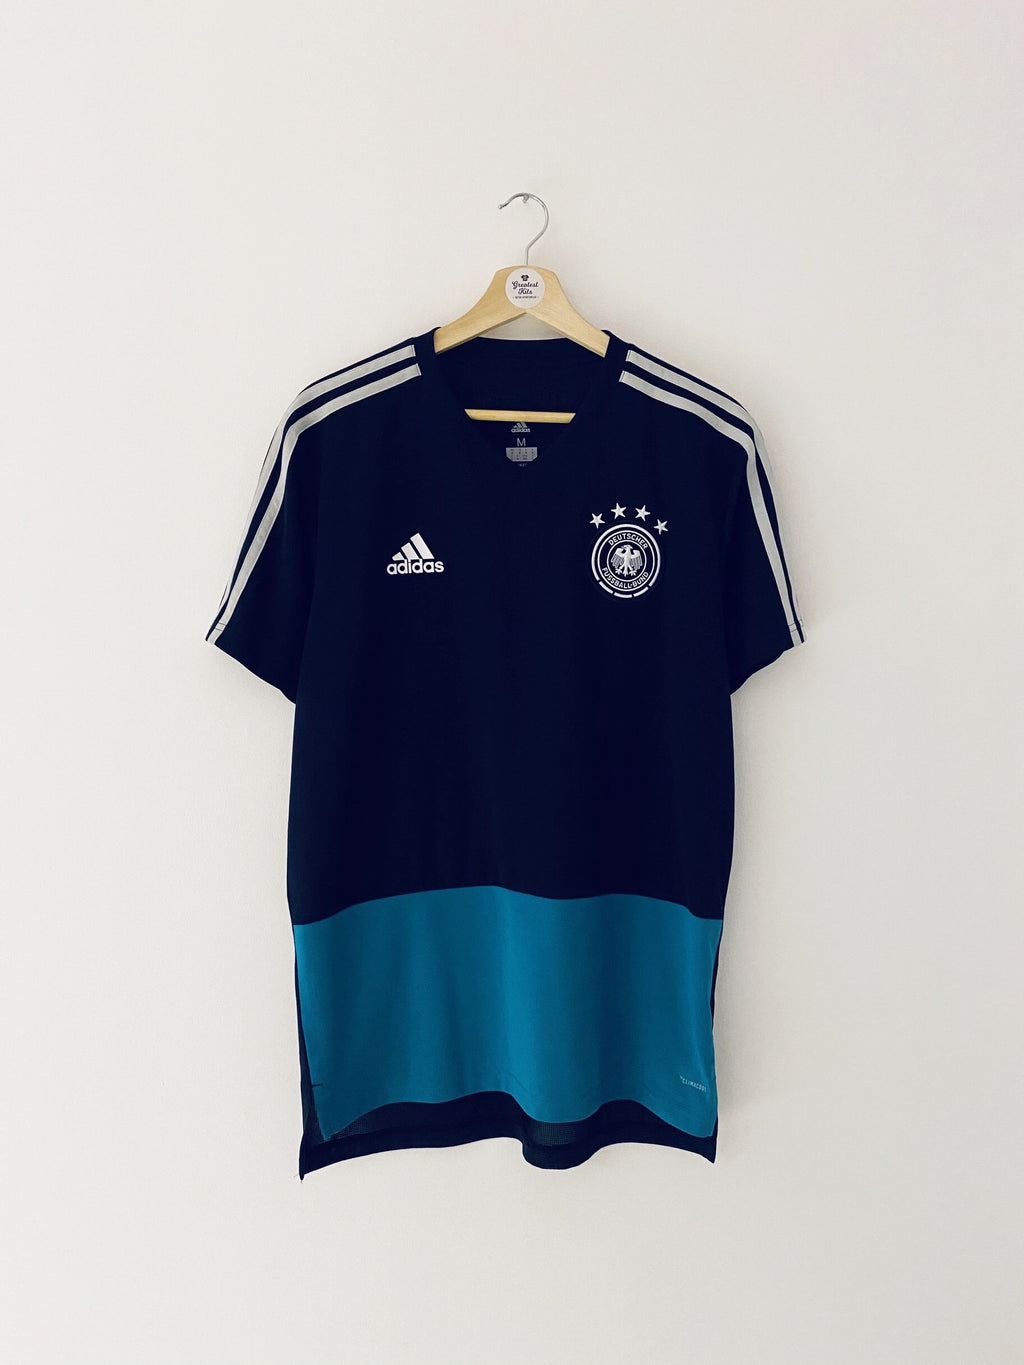 2018/19 Germany Training Shirt (M) 9.5/10